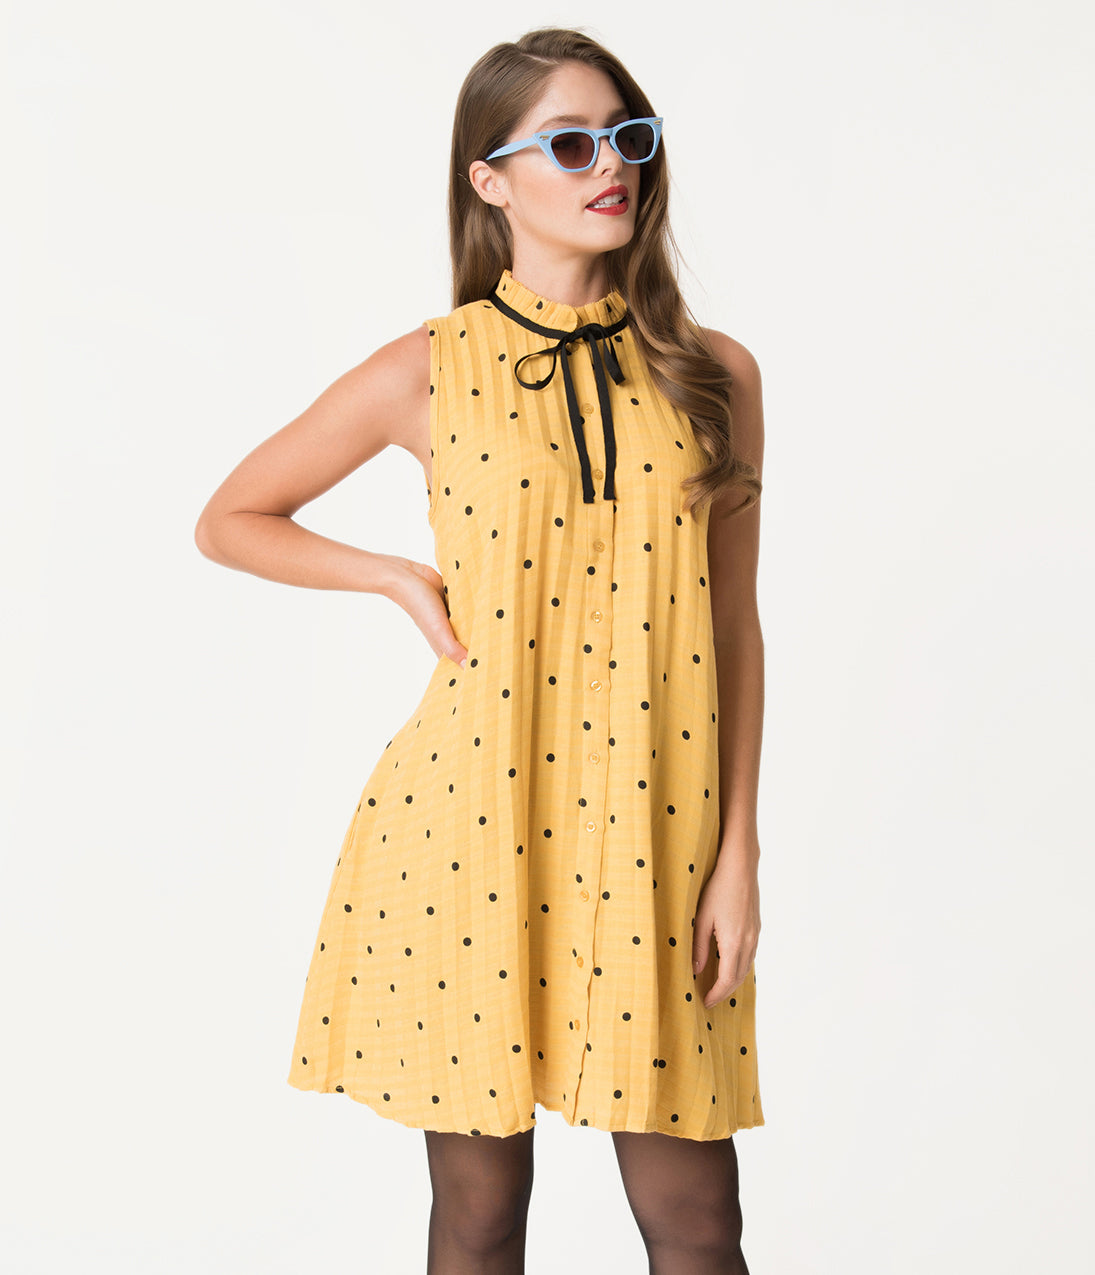 1960s Dresses | 60s Dresses Mod, Mini, Jakie O, Hippie Honey Yellow  Black Polka Dot Sleeveless Cotton Shift Dress $42.00 AT vintagedancer.com